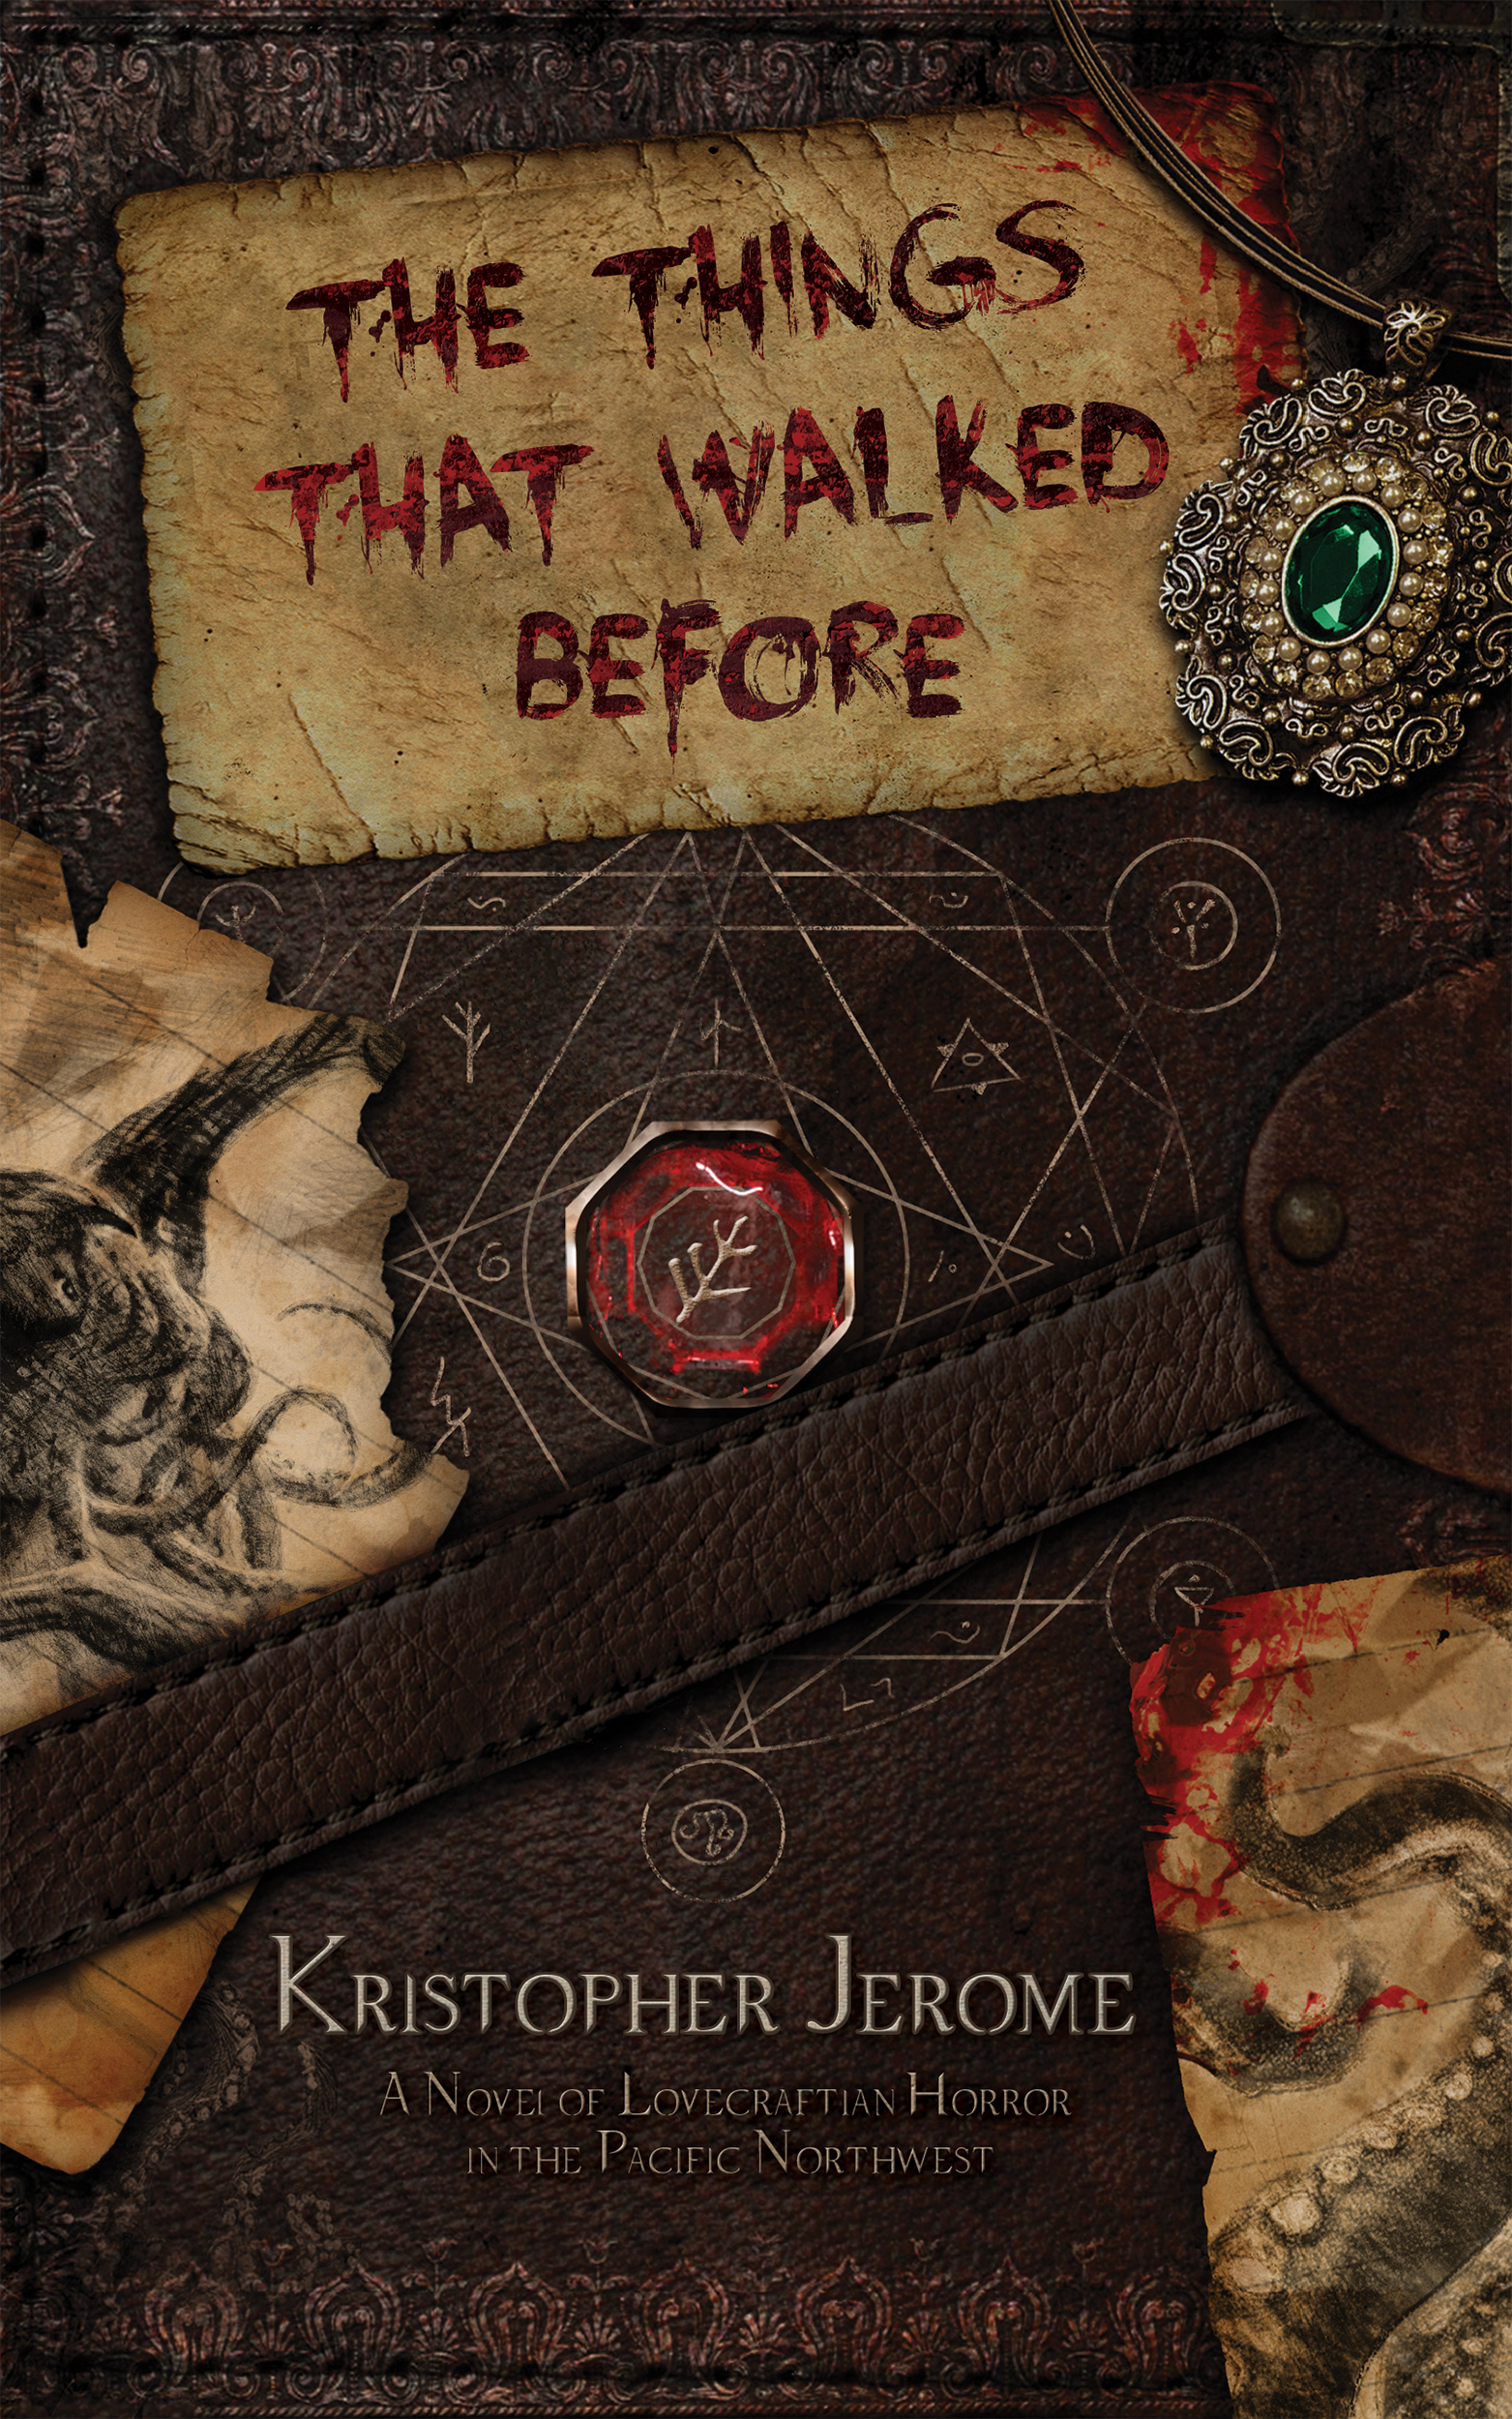 THE THINGS THAT WALKED BEFORE by Kristopher Jerome